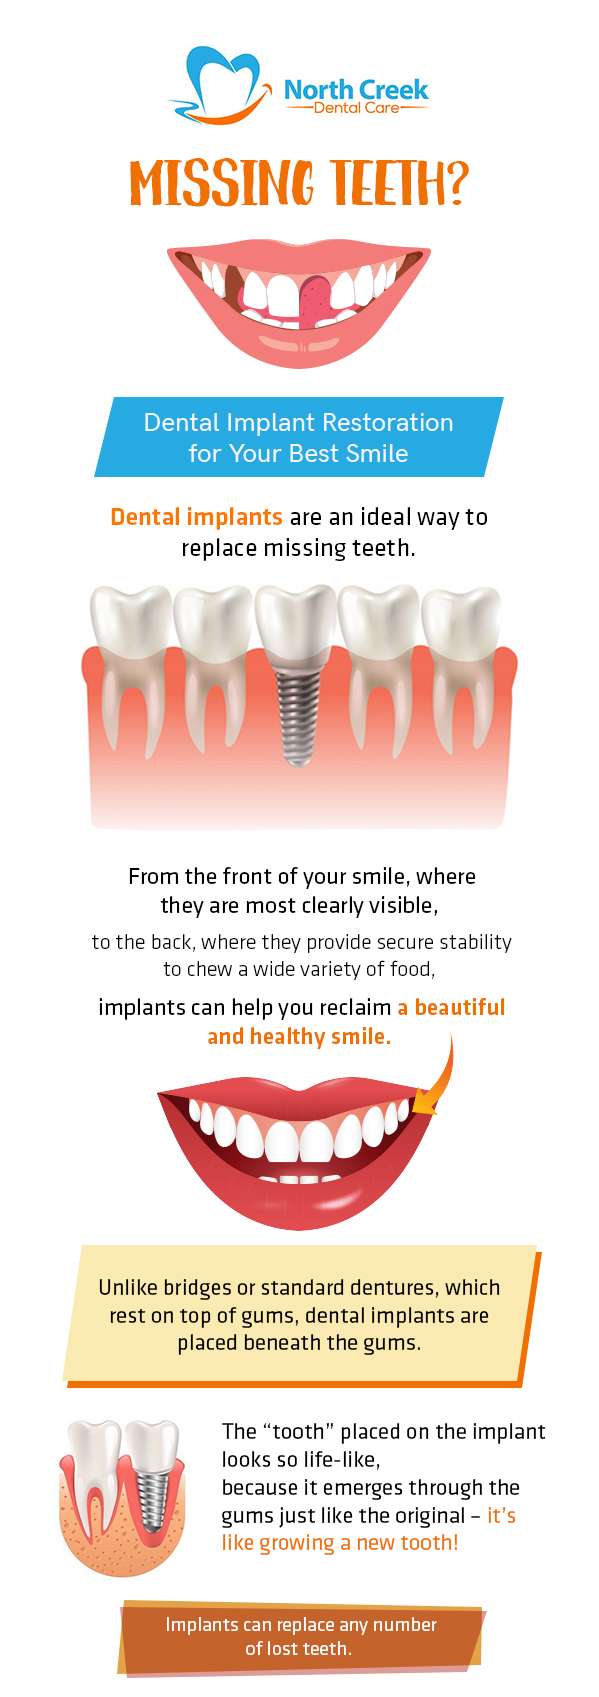 Dental Implants by North Creek Dental Care – An Ideal Way to Replace Missing Teeth